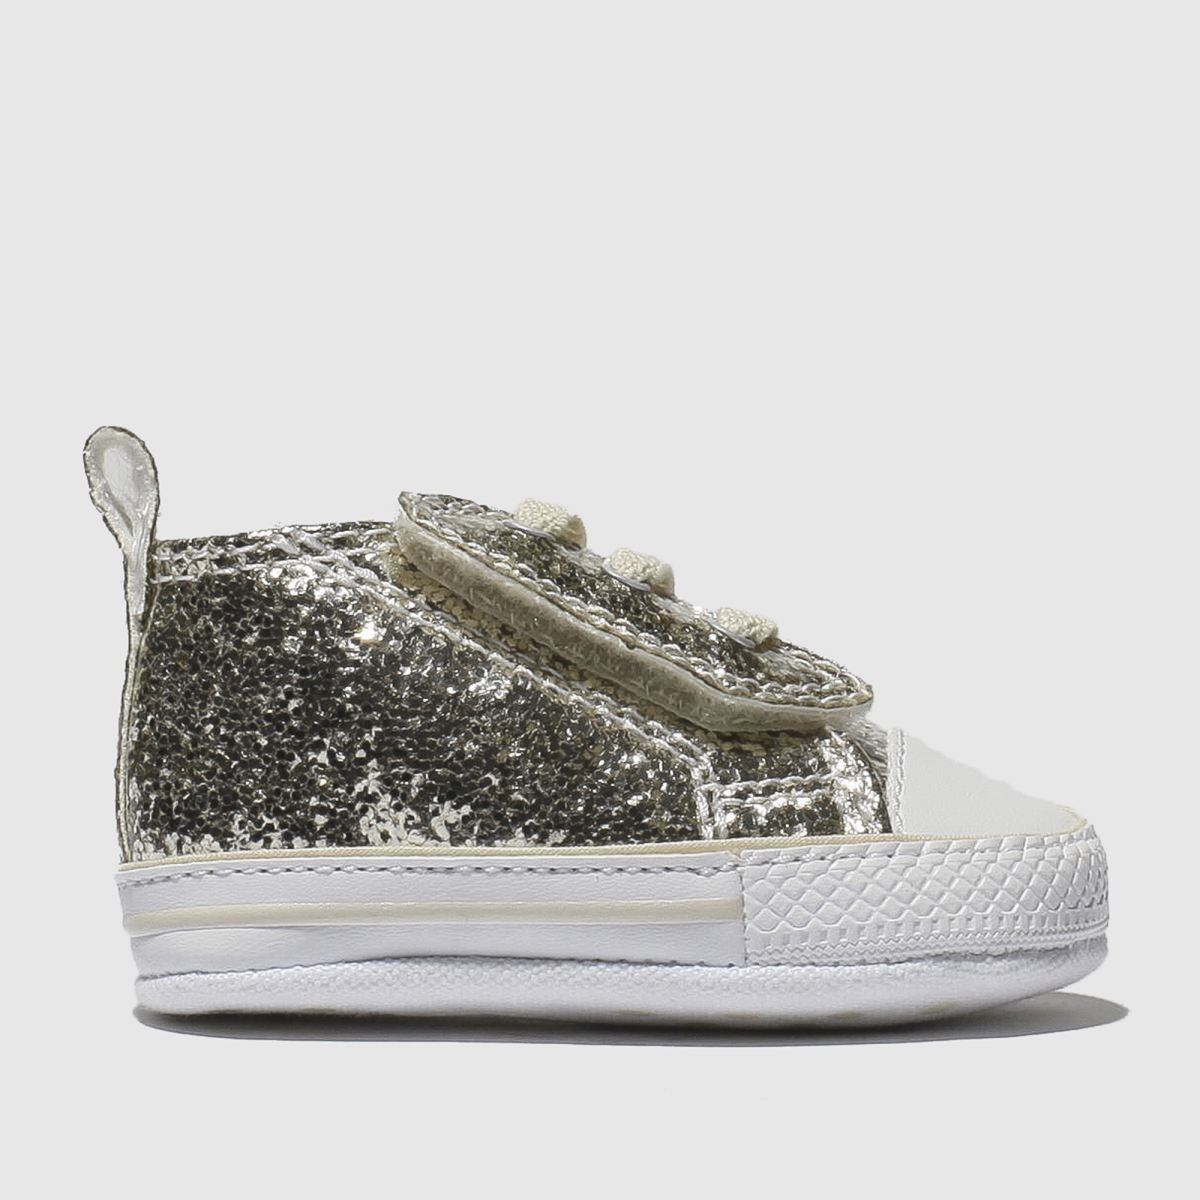 59298c7b47c Converse Gold 1st Star Easy Slip Glitter Shoes Baby - Female First Shopping